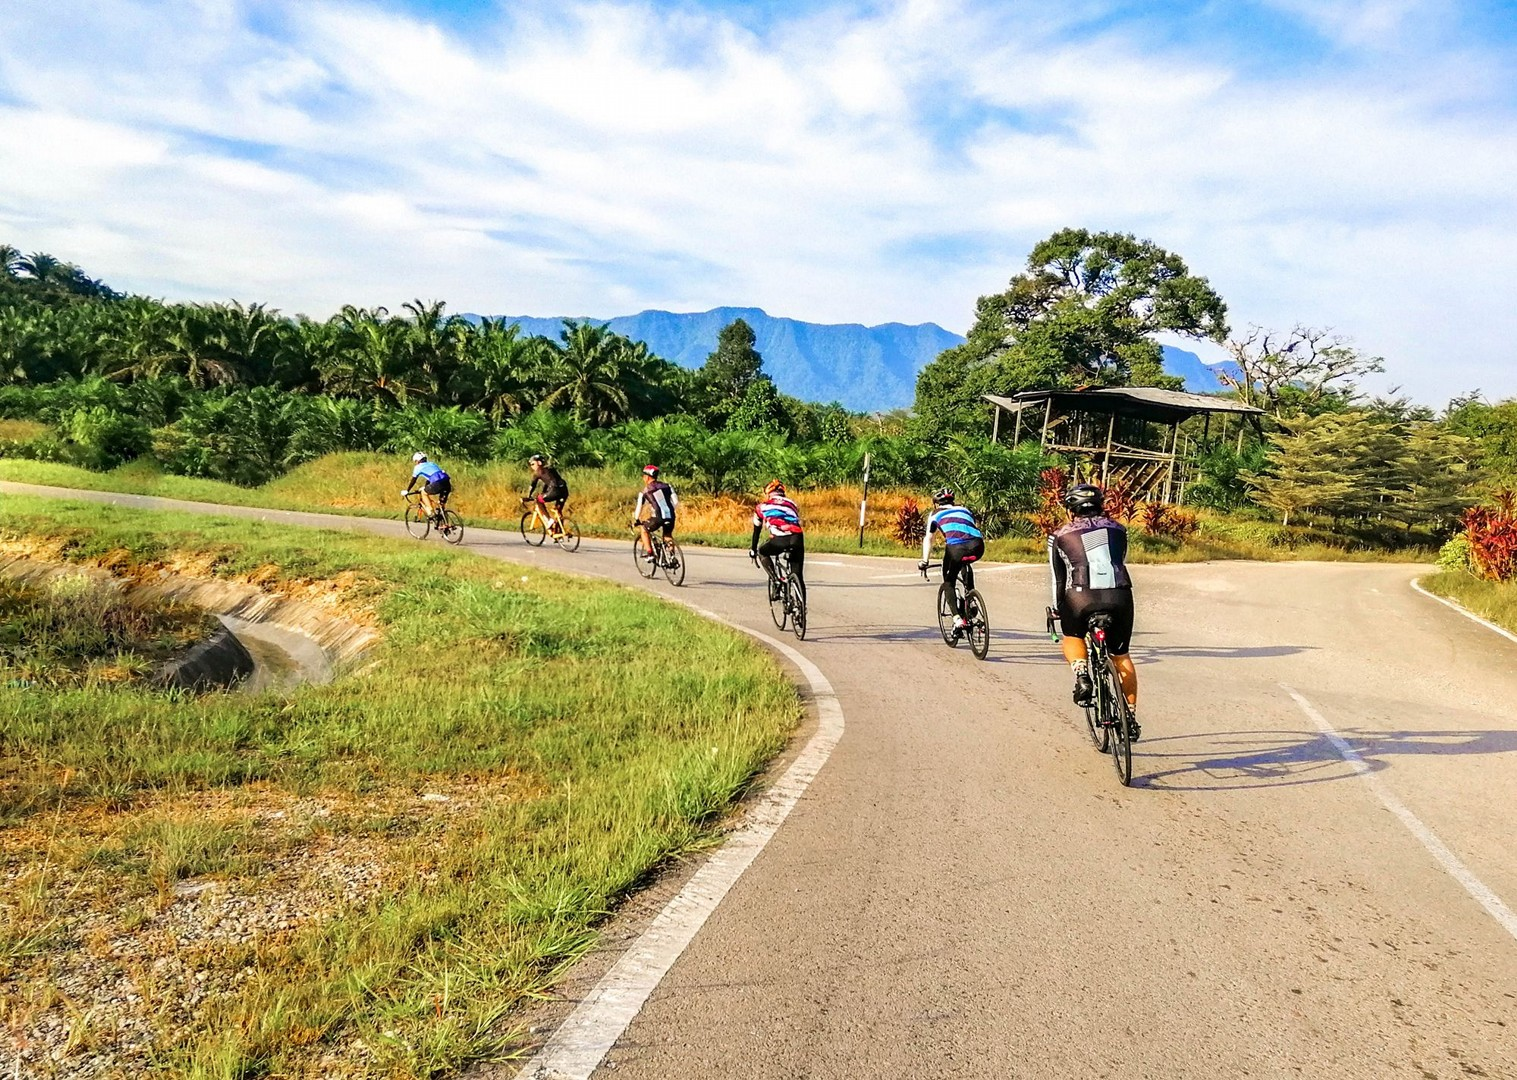 road-cycling-sarawak-to-sabah-borneo-holiday.jpg - Borneo - Sarawak to Sabah - Guided Road Cycling Holiday - Road Cycling